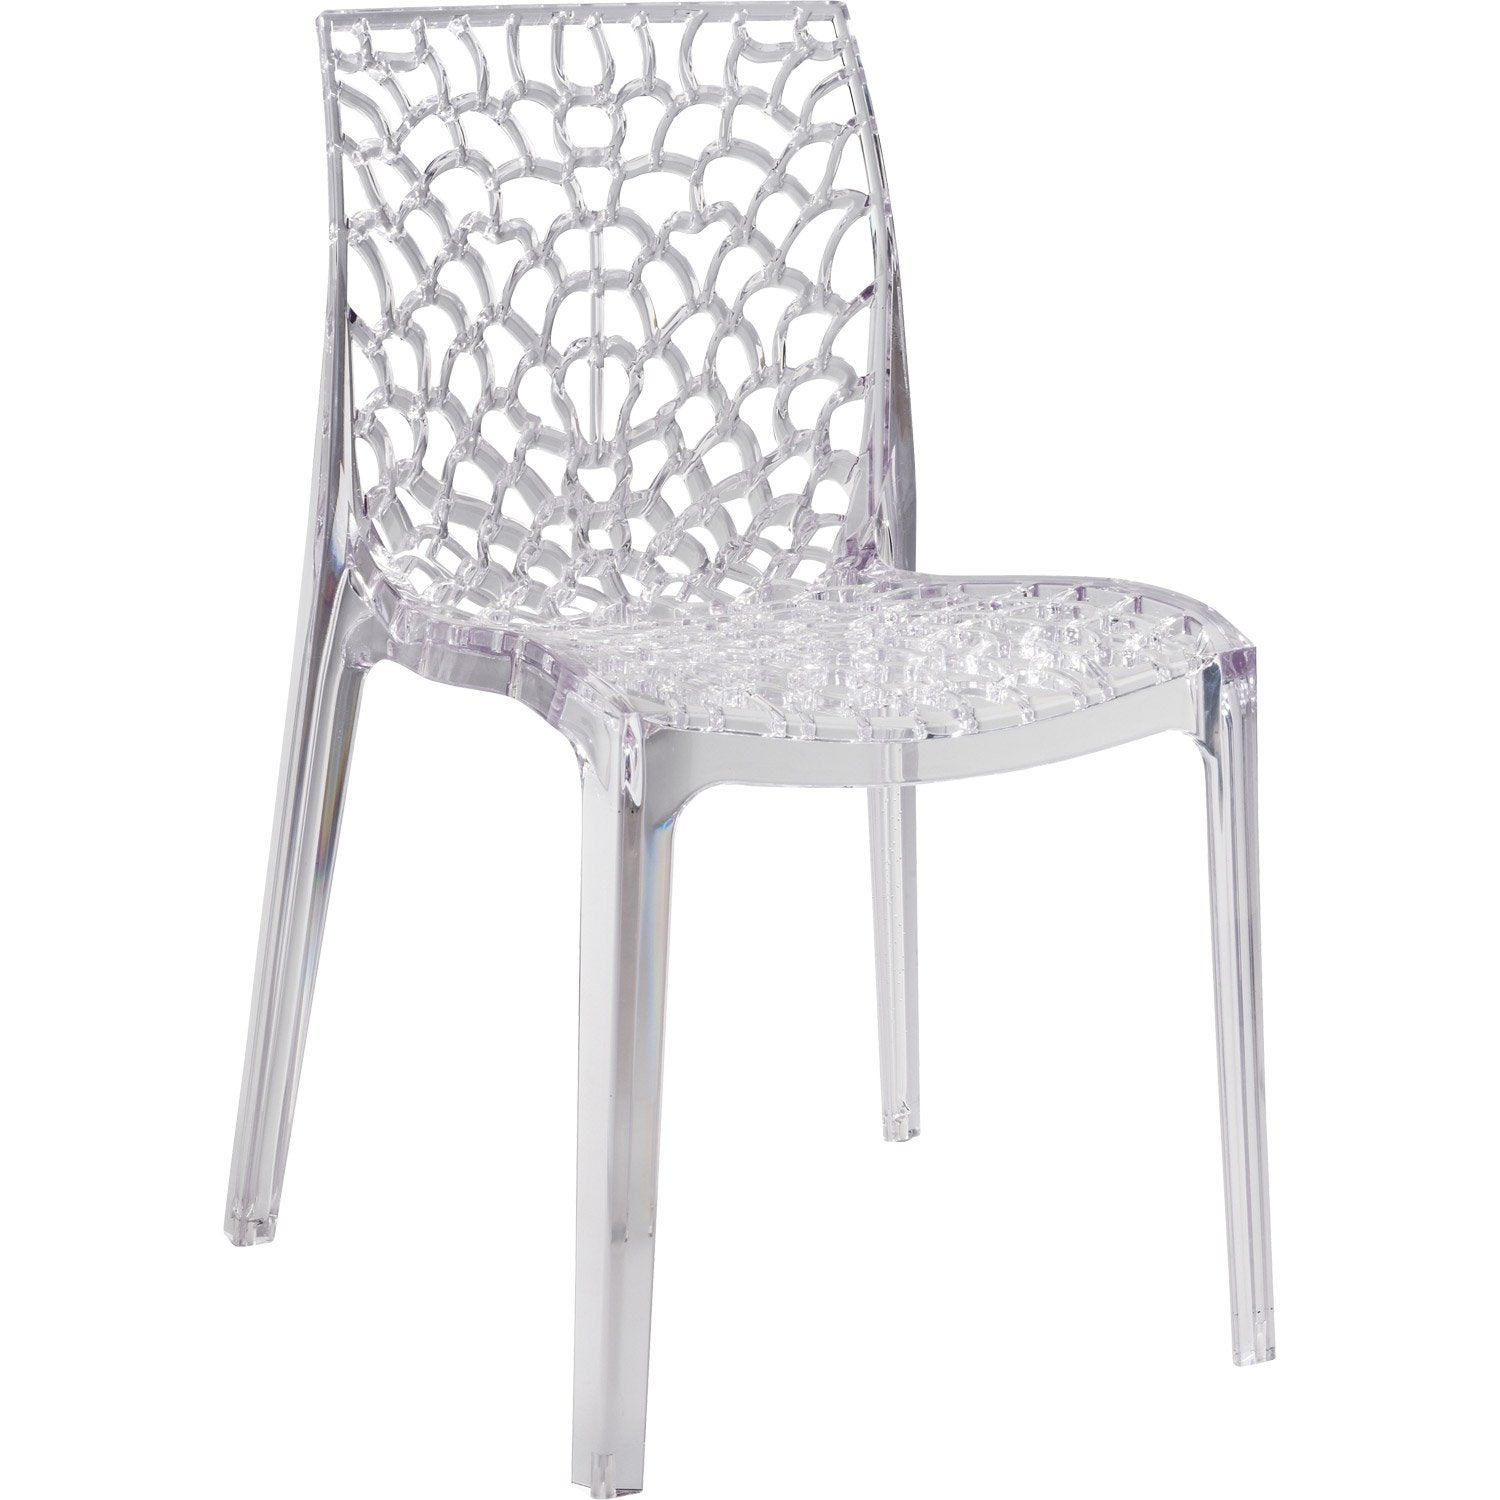 Chaise de jardin en polycarbonate grafik lux transparent for Chaises blanches de cuisine